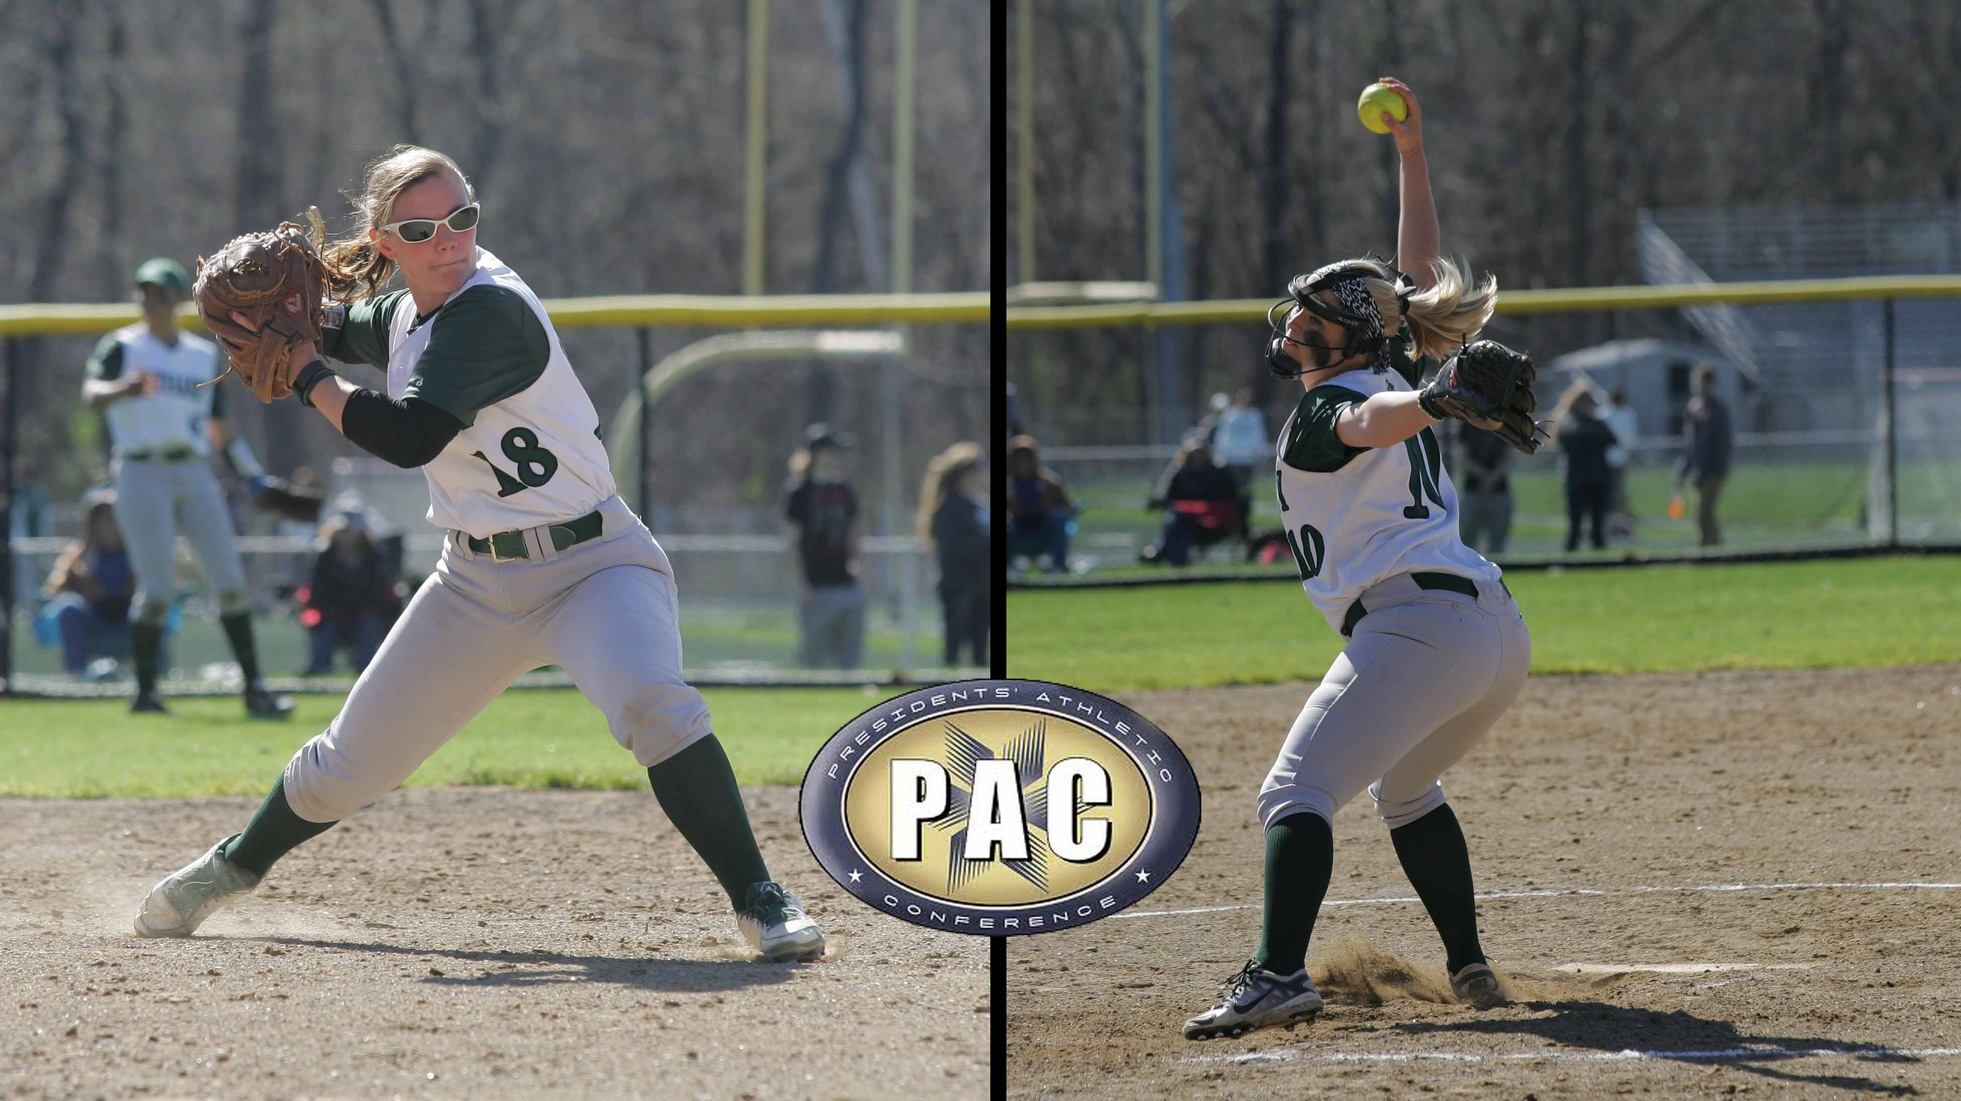 Bison sweep weekly PAC awards